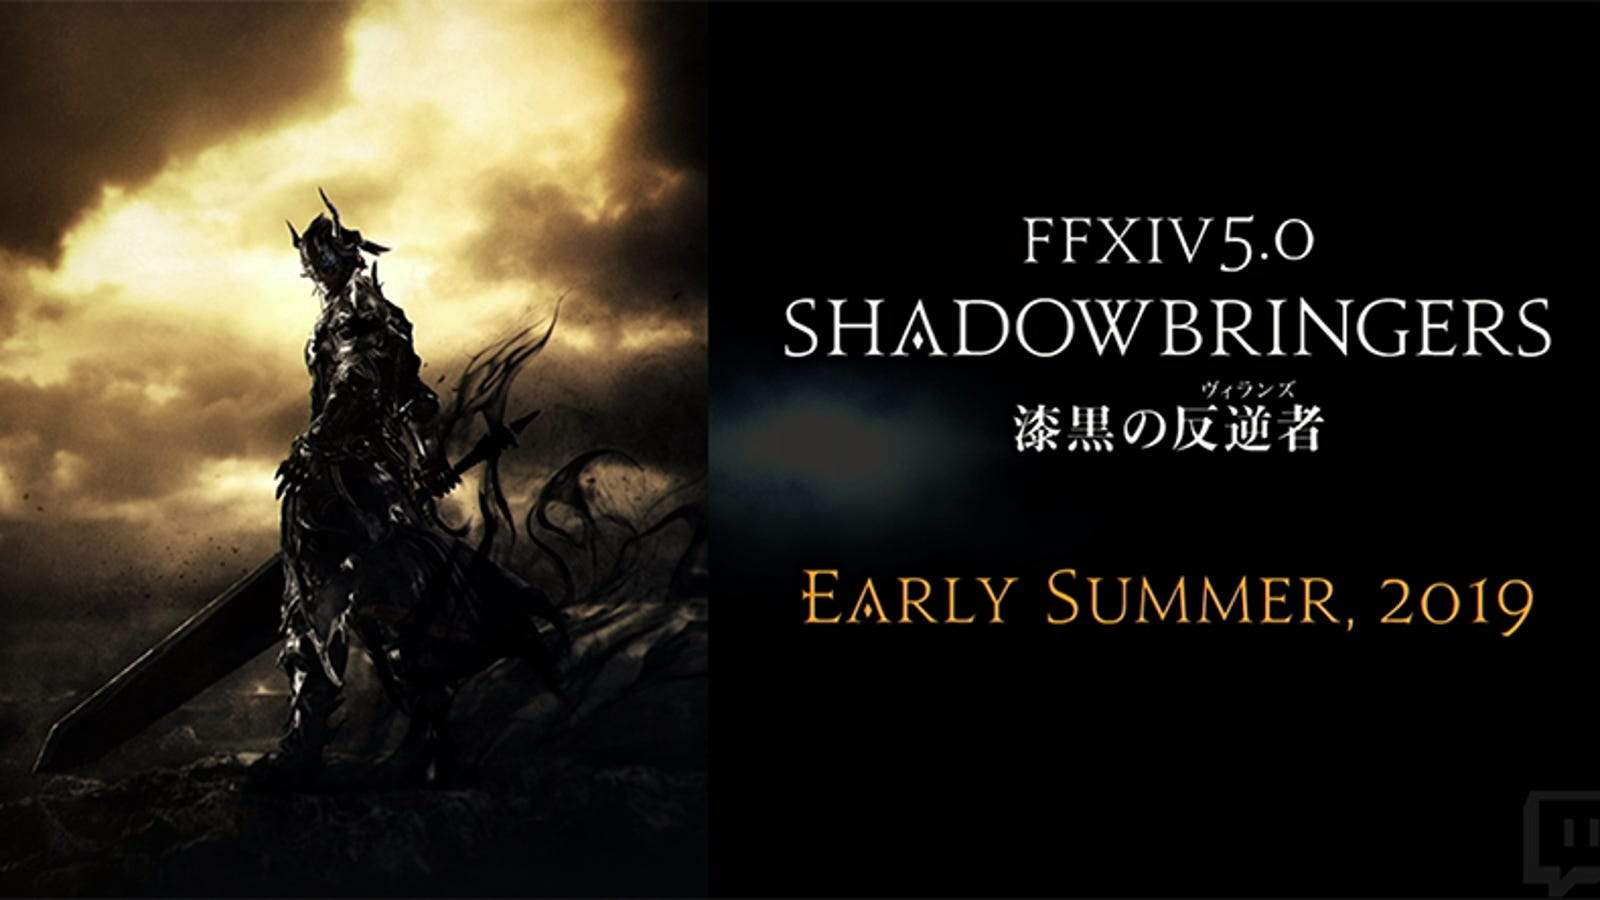 Final Fantasy XIV's Next Expansion Is Shadowbringers, Coming Summer 2019